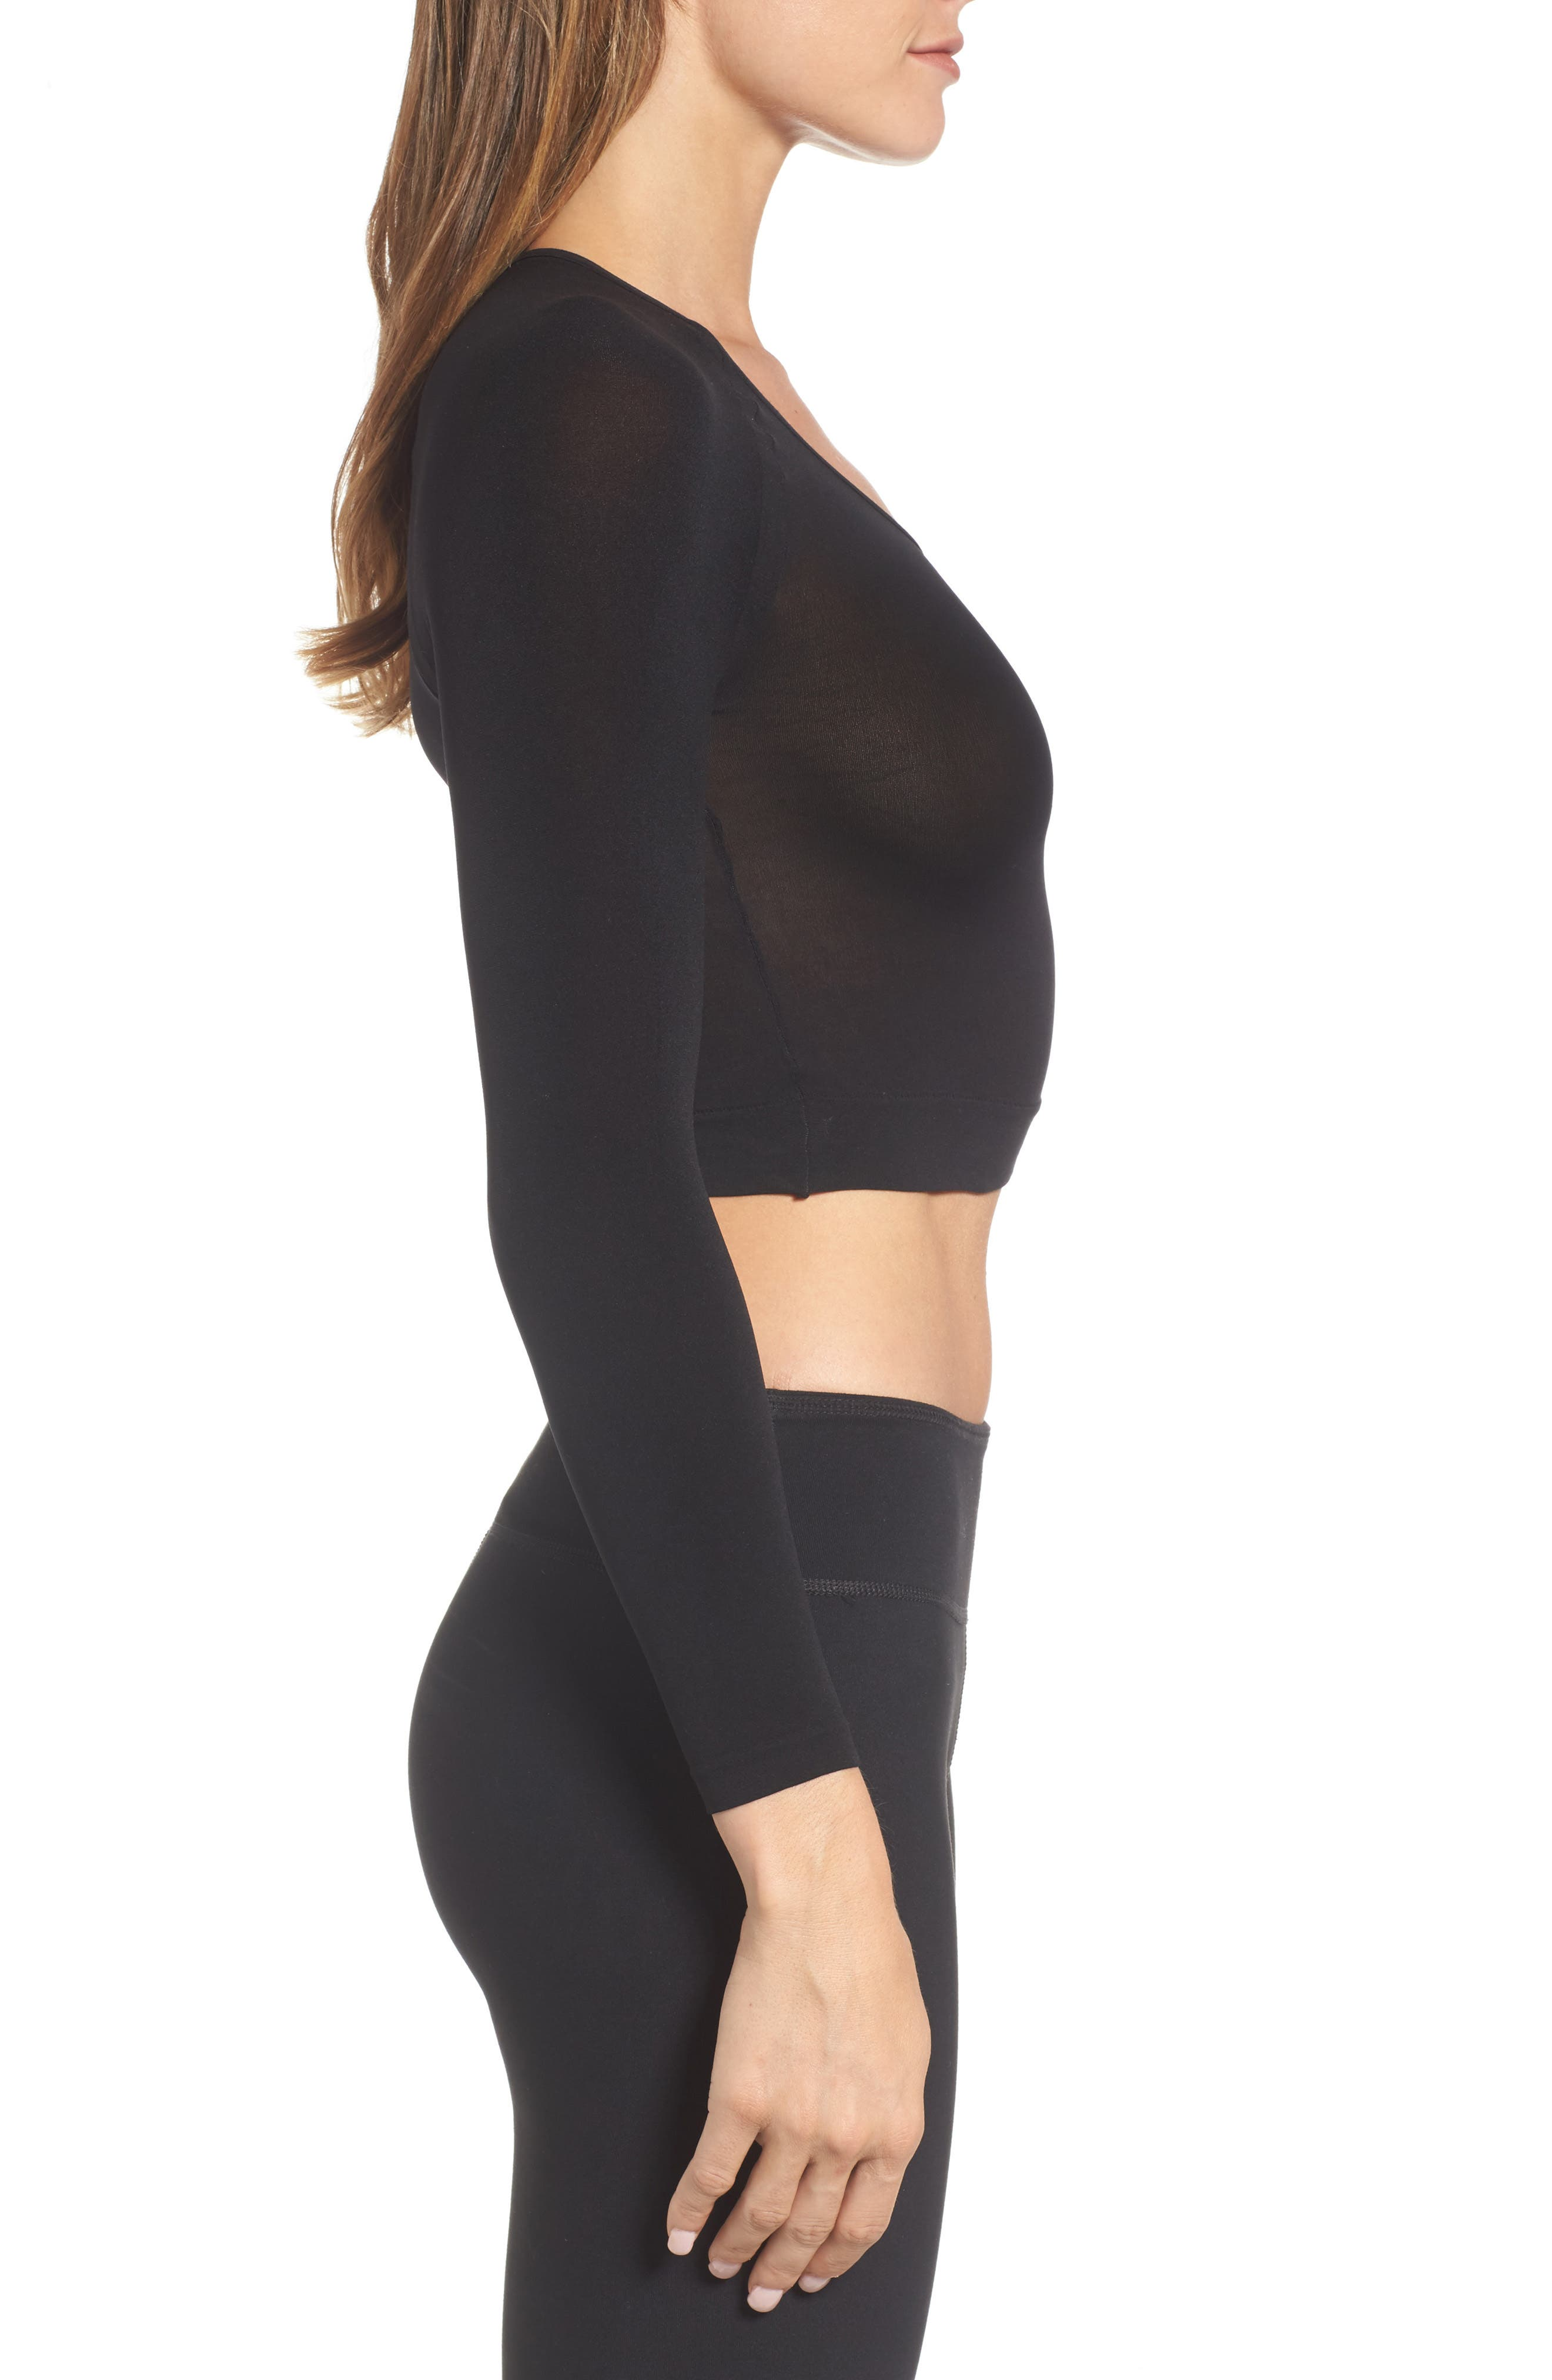 Arm Tights Crop Top,                             Alternate thumbnail 3, color,                             Very Black